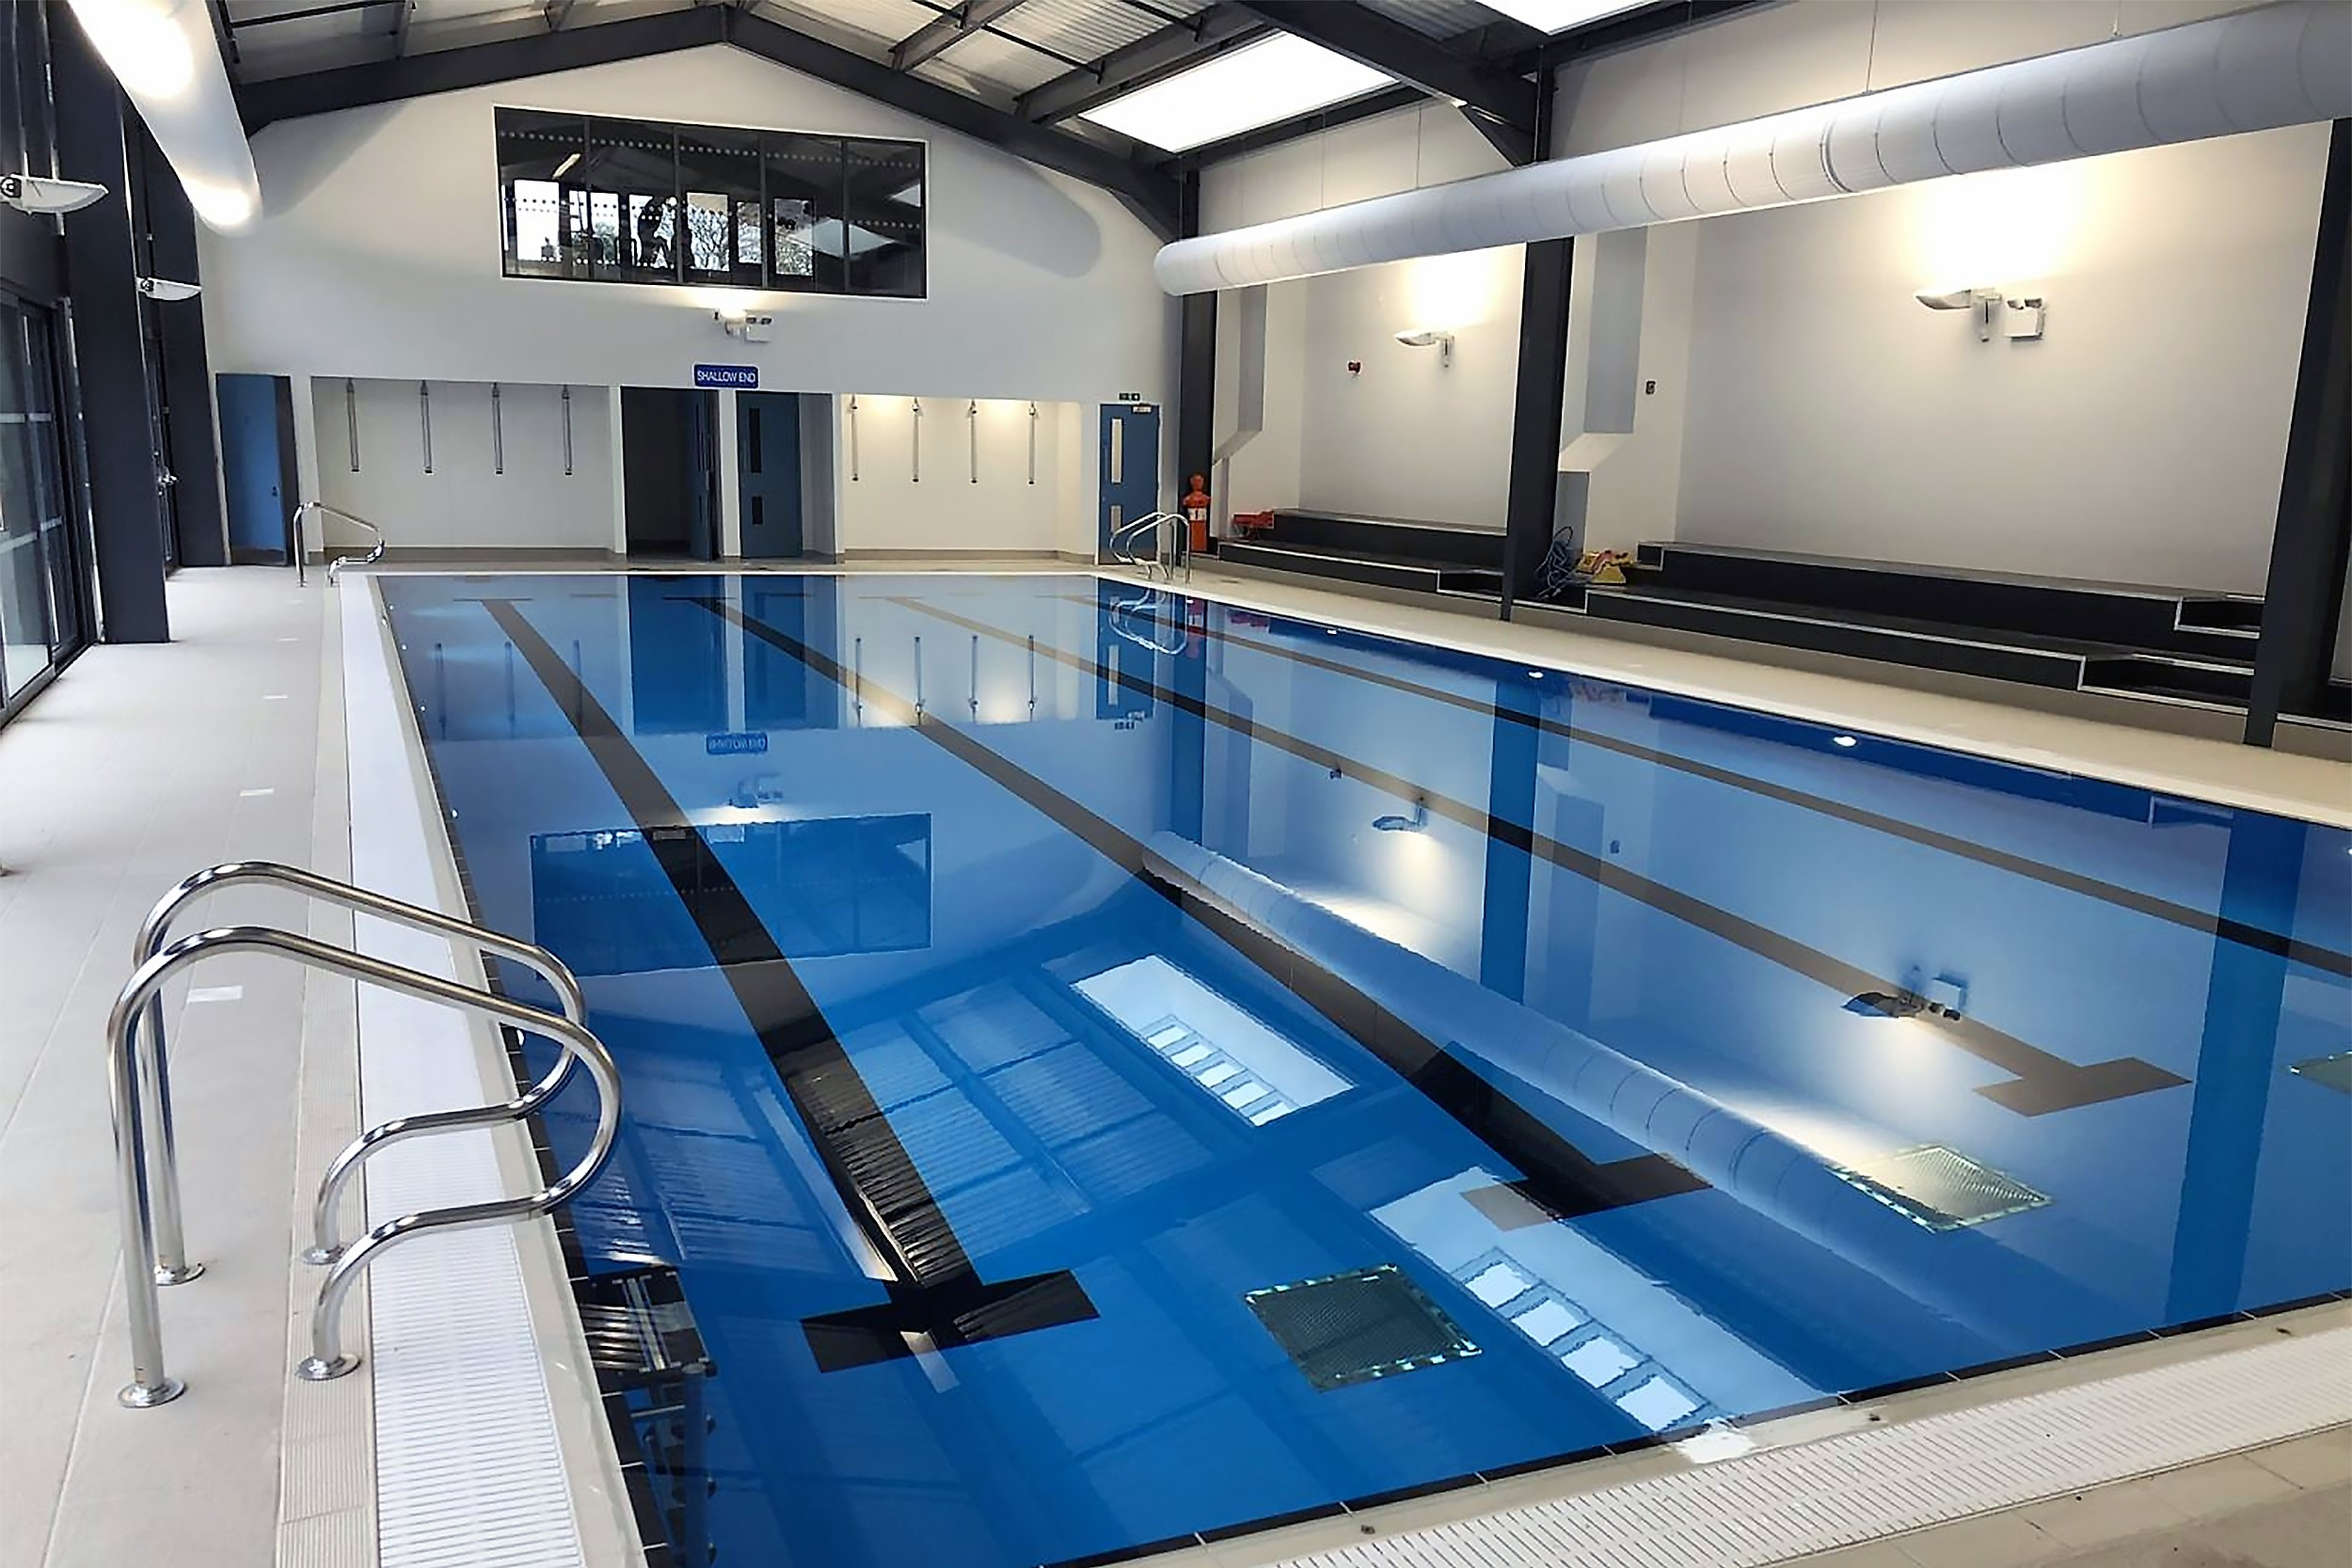 The swimming pool at St Hugh's school with Prihoda fabric diffusers